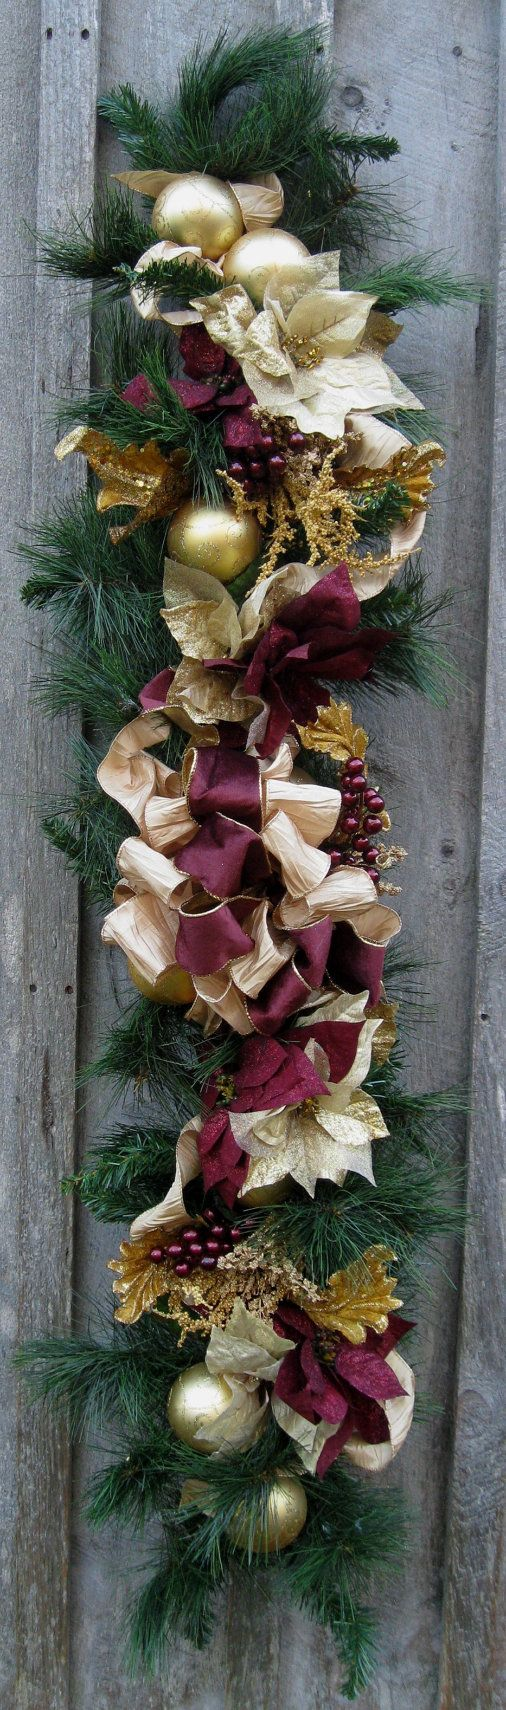 Christmas Garland, Holiday Swag, Elegant Décor, Designer Garland, Victorian Poinsettia Garland